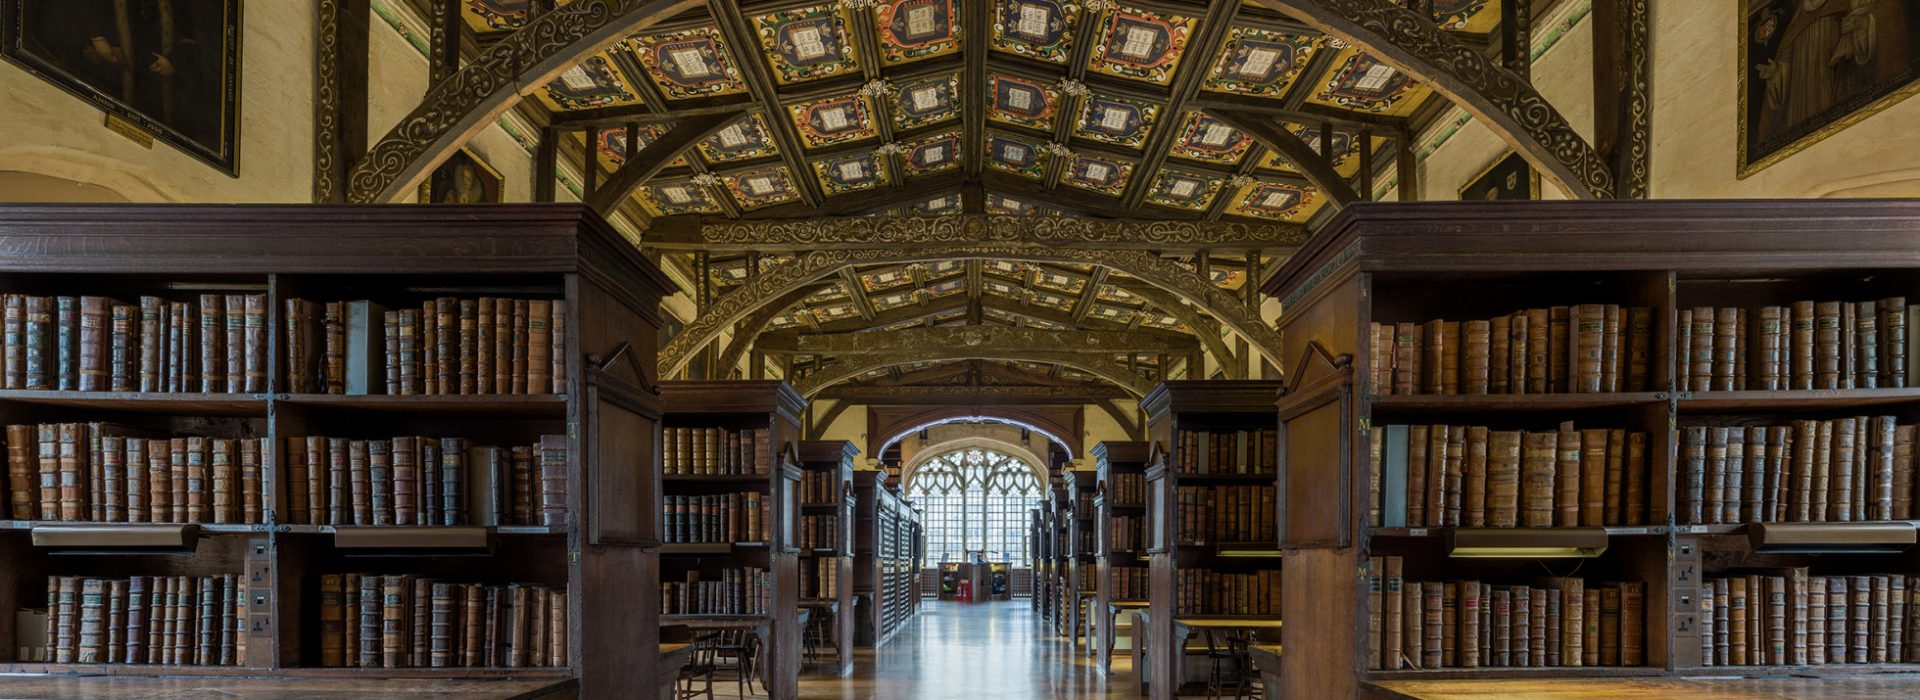 Top 4 coolest libraries around the globe